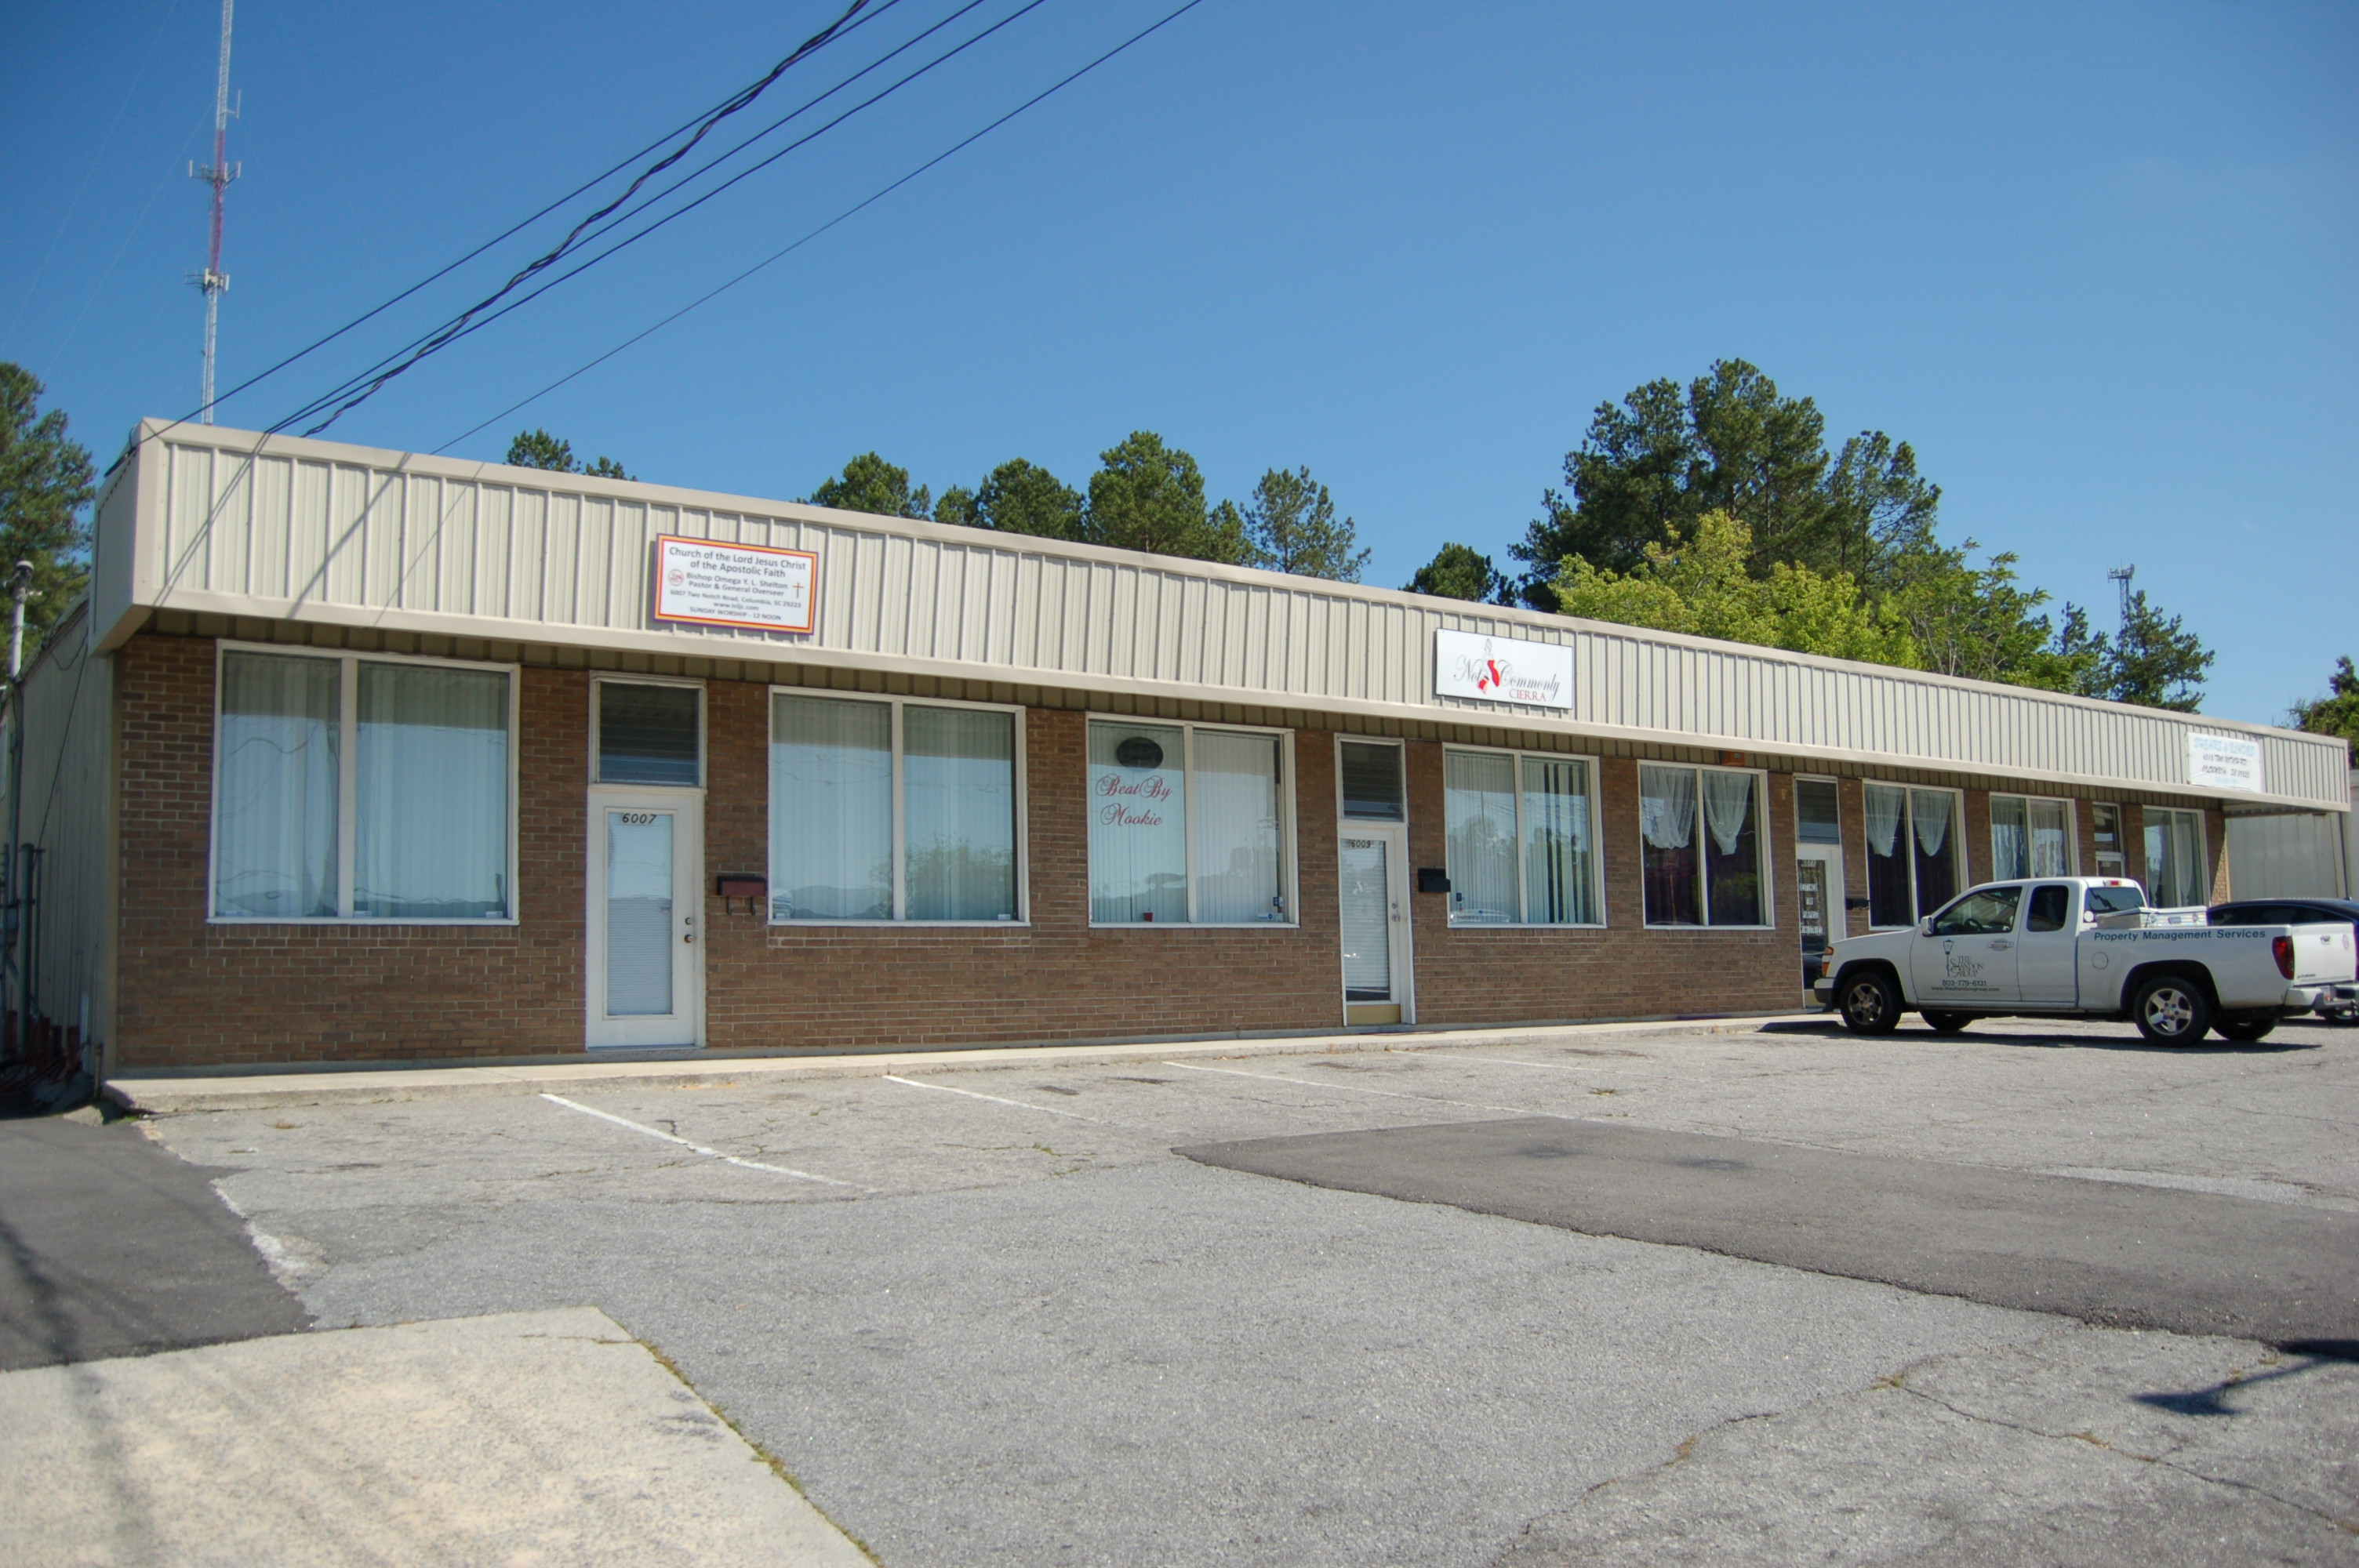 6009 Two Notch Road,Columbia,South Carolina 29223,Commercial,Two Notch Road,1075